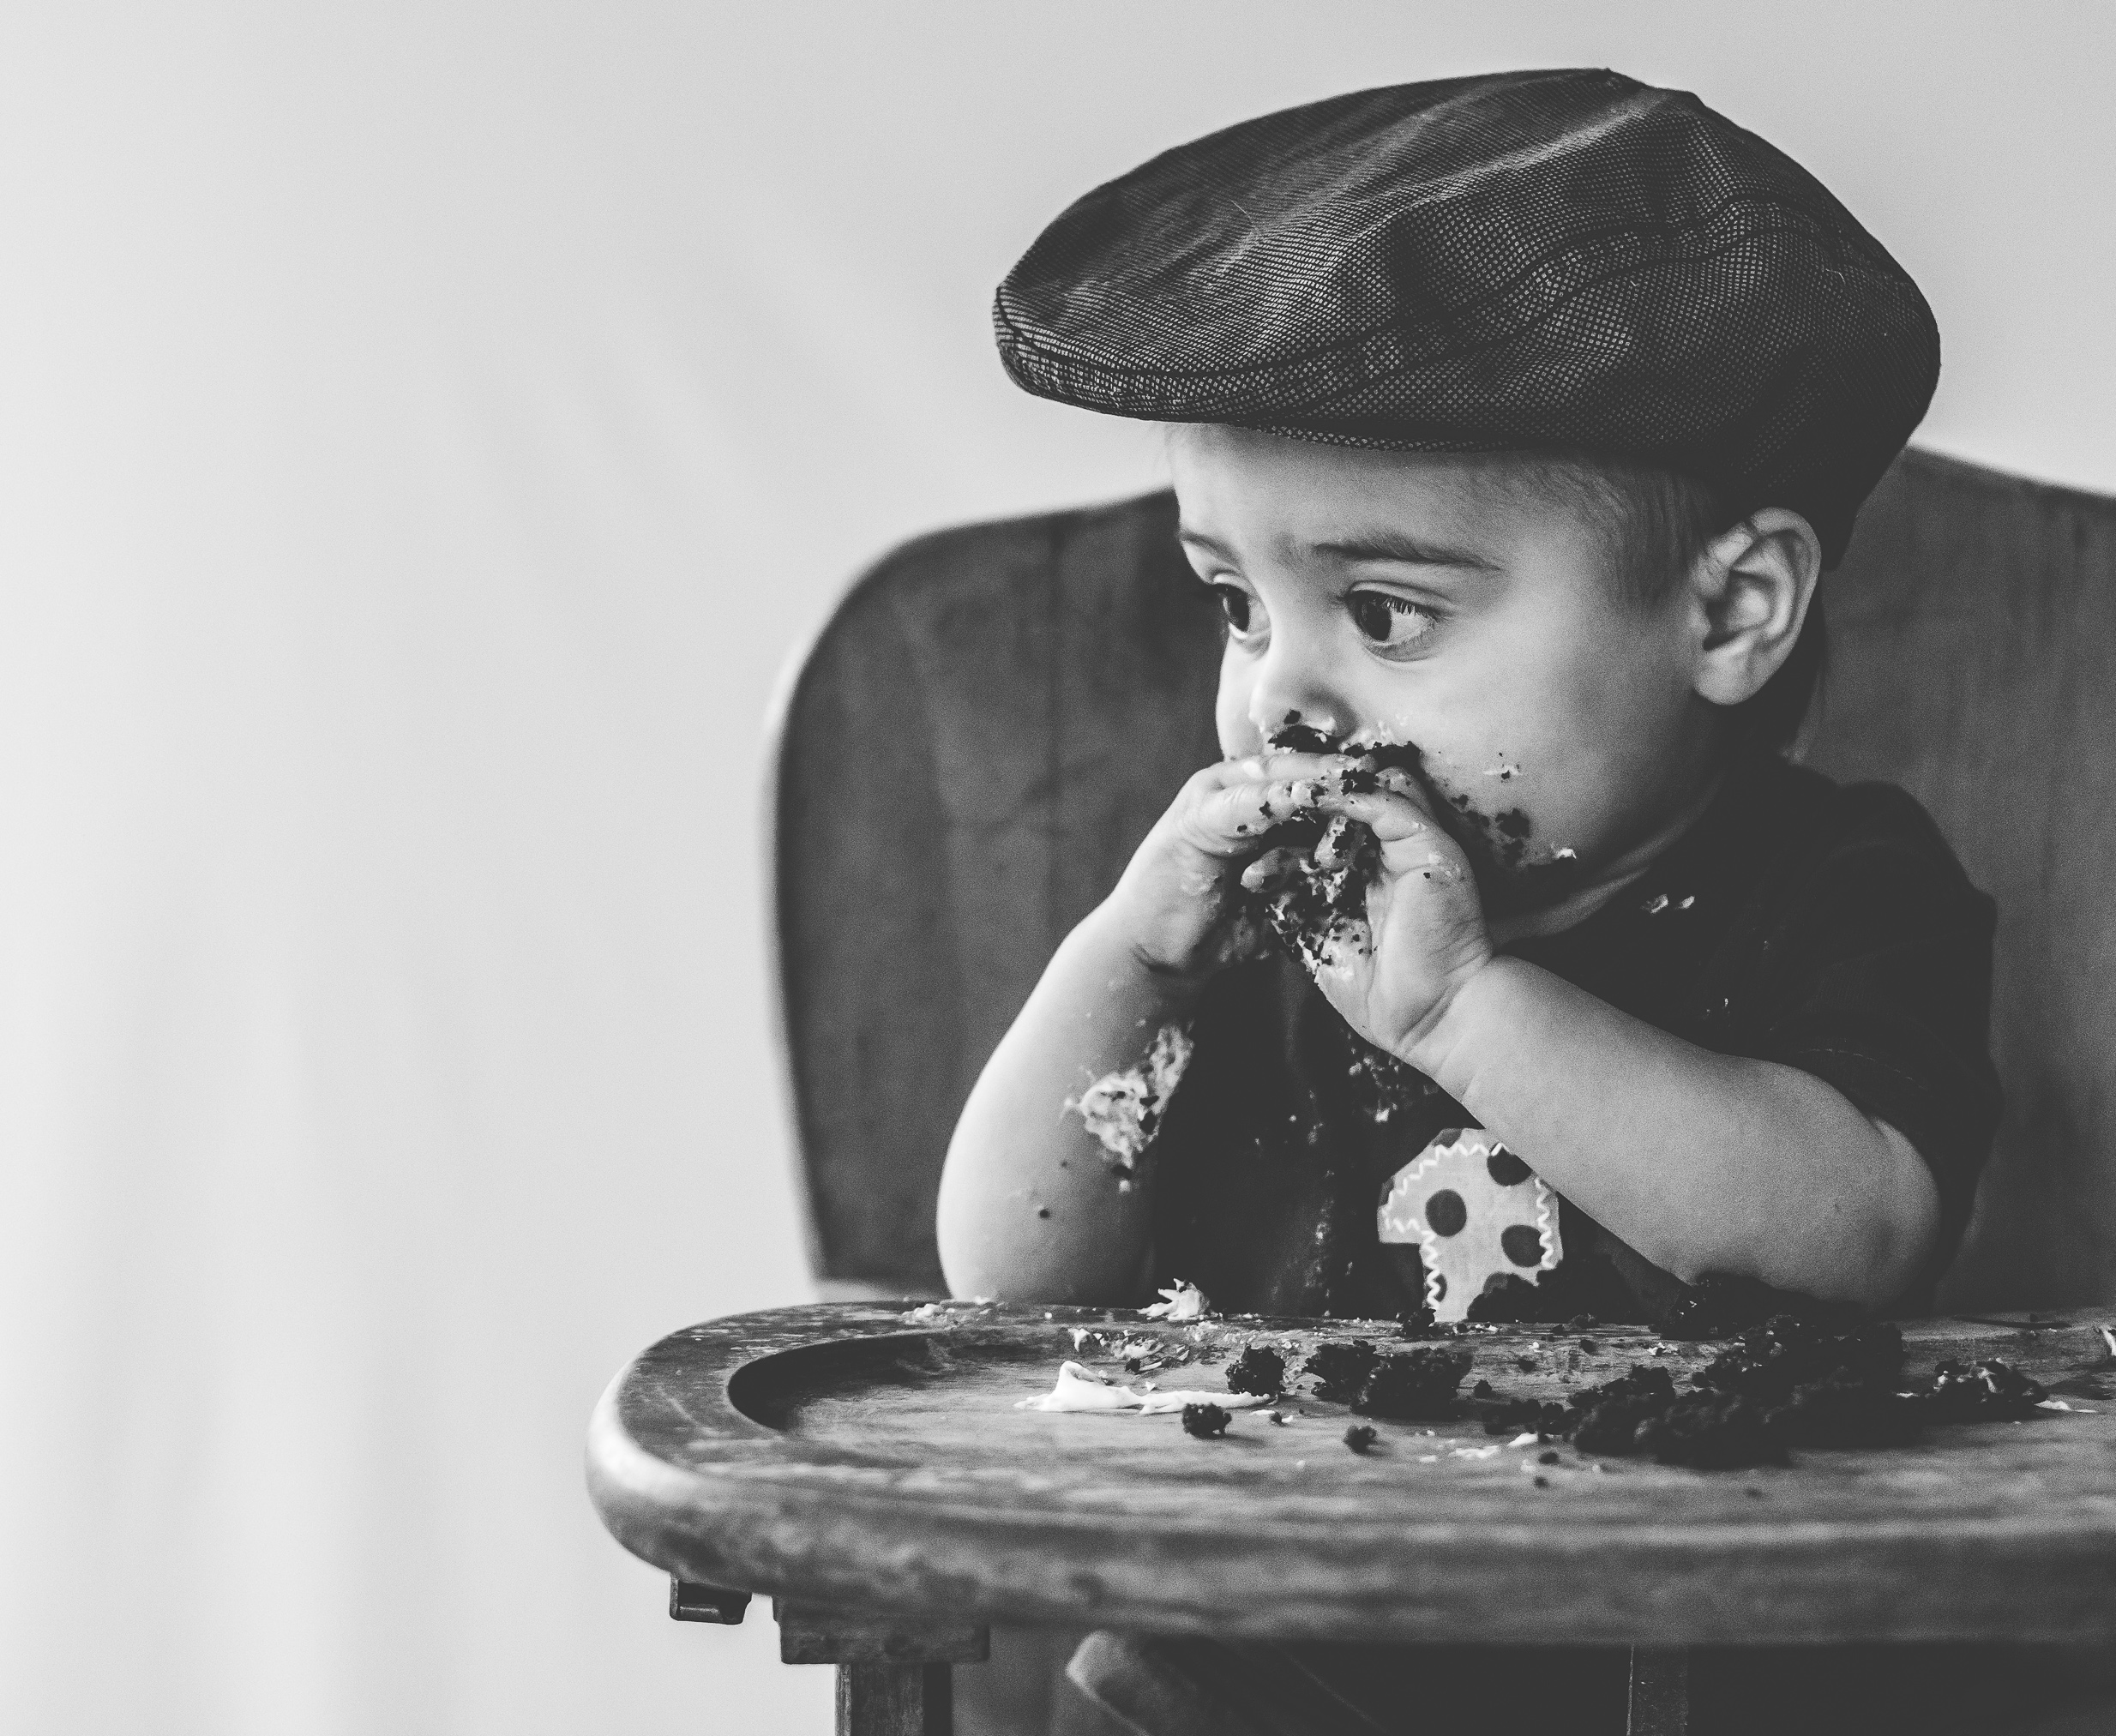 Contemplating exactly what it means to be old enough to enjoy desserts.